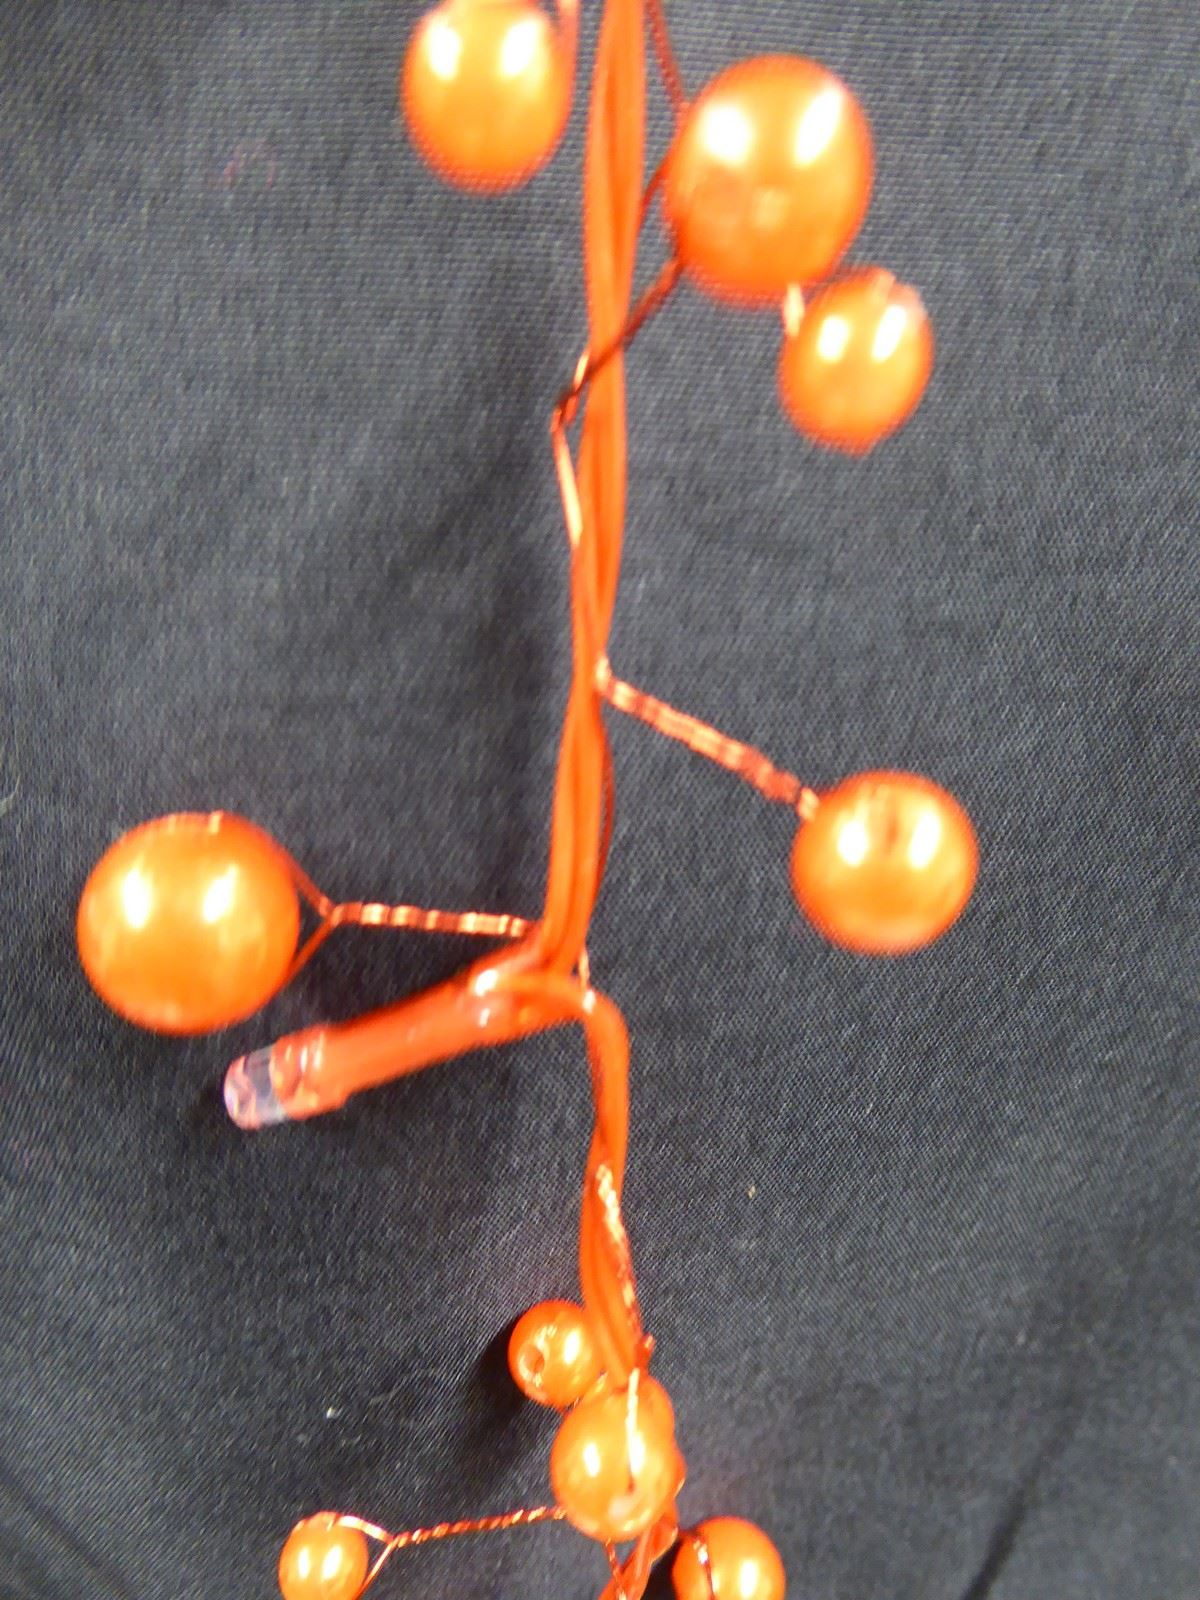 6ft-1-8m-Berry-Twig-Artificial-Christmas-Garland-With-Lights-Decoration thumbnail 13